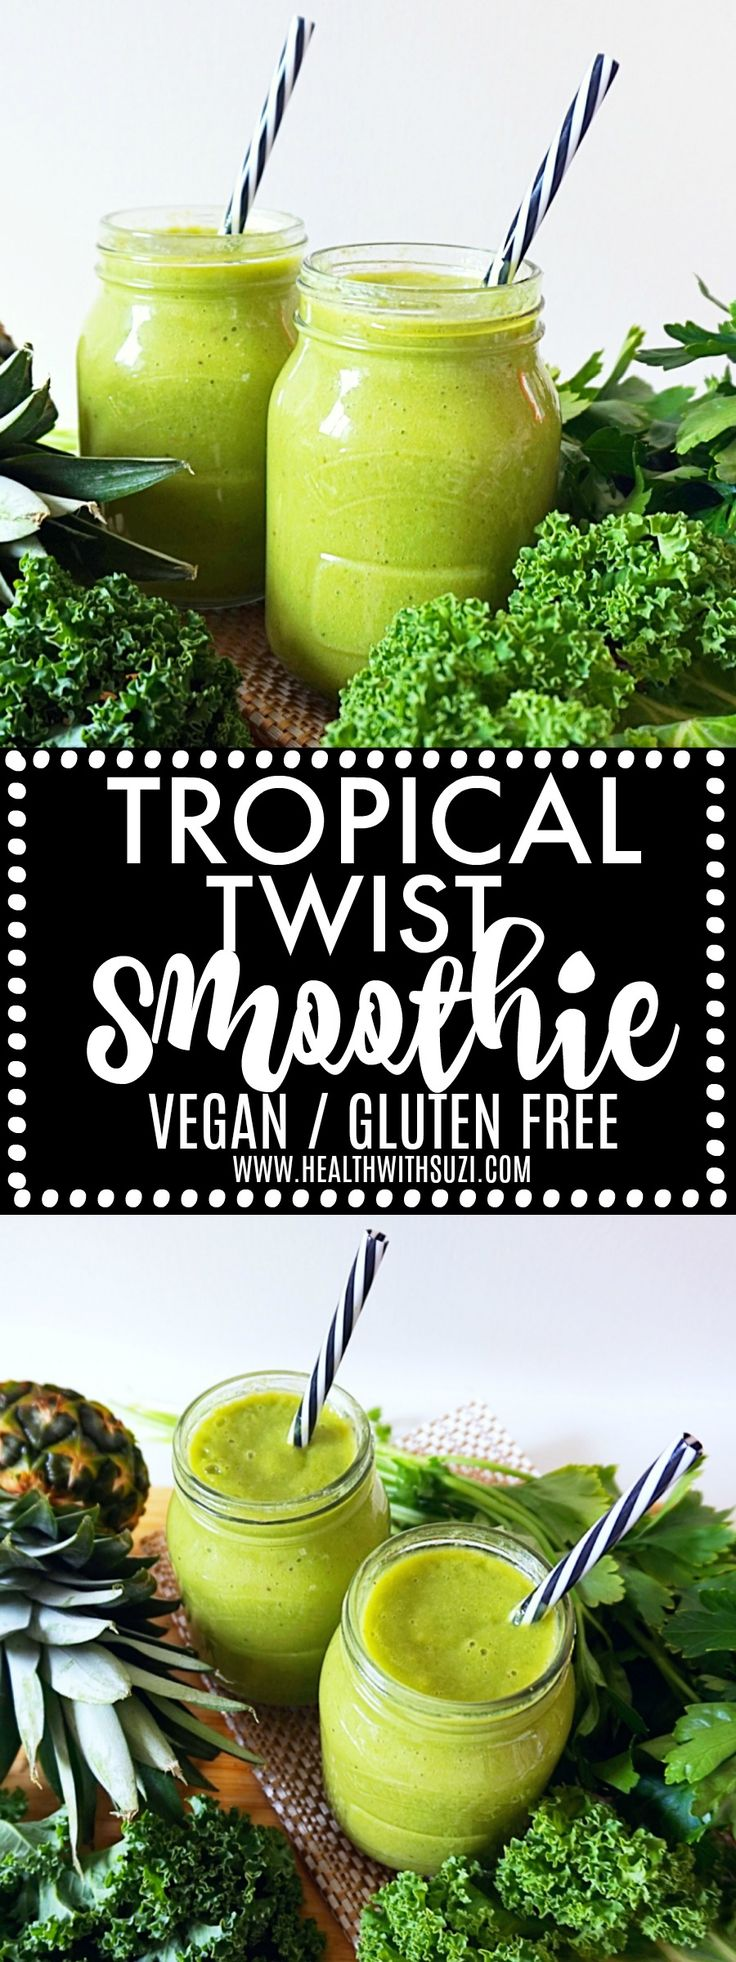 This smoothie is so cleansing and refreshing and the combination of ingredients make it taste so delicious! I love it!